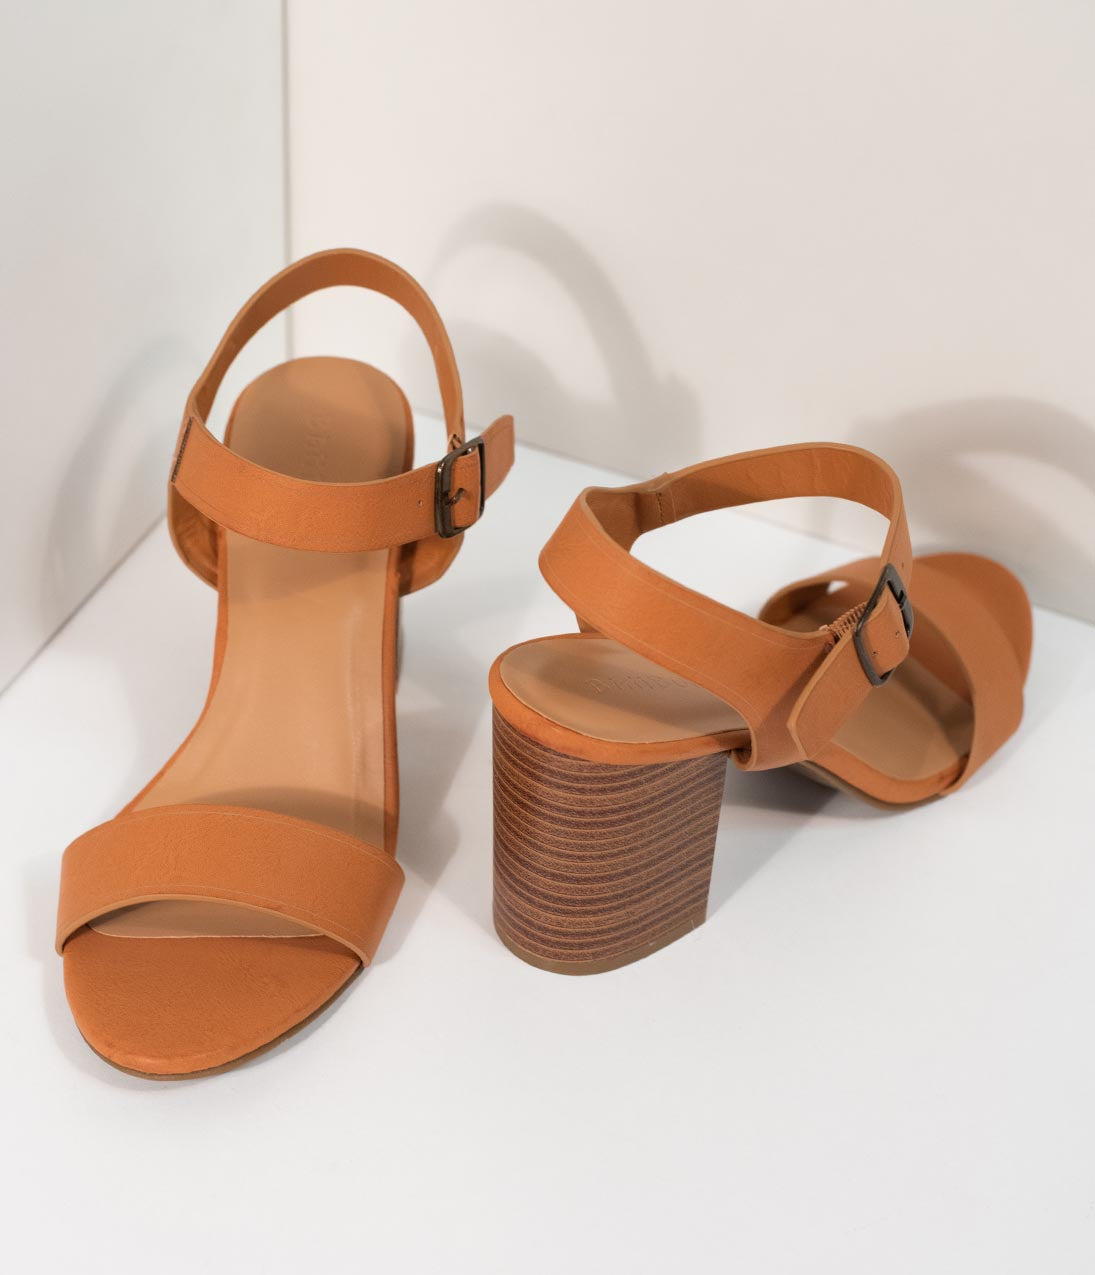 Vintage Sandal History: Retro 1920s to 1970s Sandals Tan Leatherette Open Toe Block Heel Sandals $44.00 AT vintagedancer.com